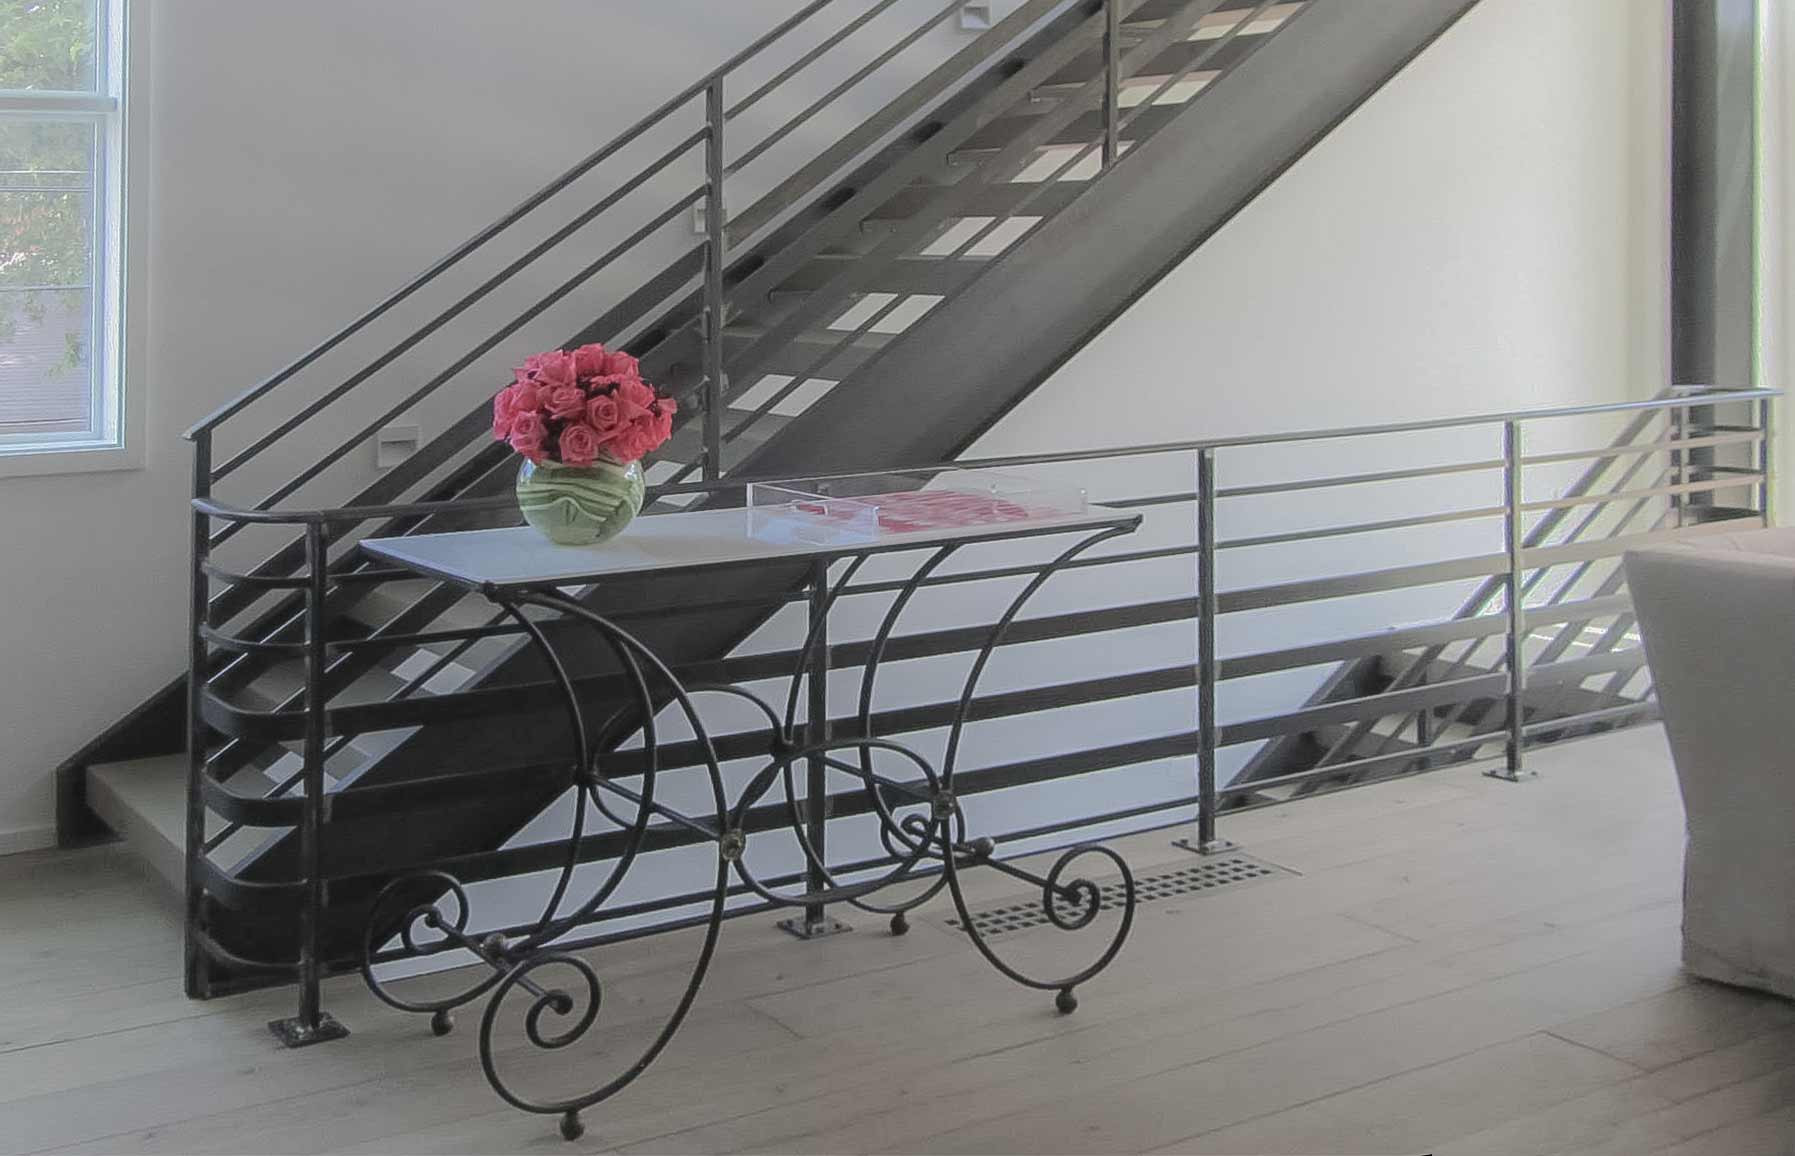 21_Industrial Stairs With Metal Balustrade & No Risers, Washington DC, 20002